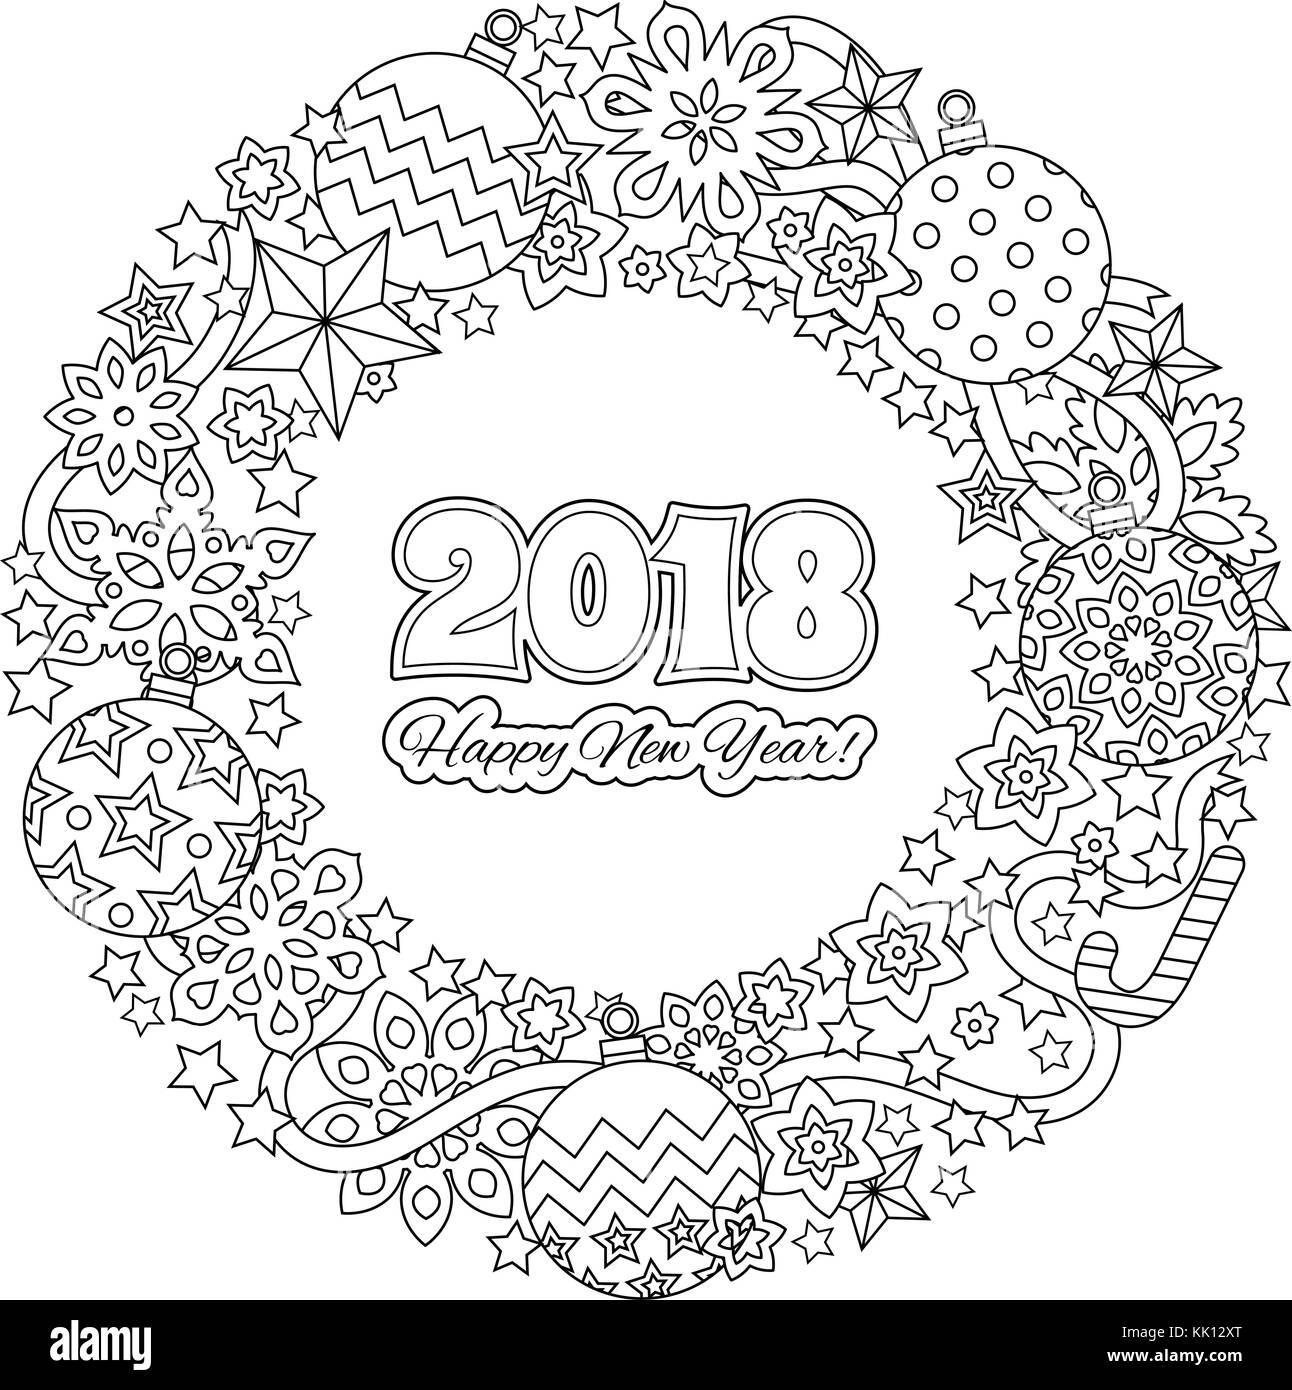 Congratulation Card Happy New Year 2018 Wreath Consisting Of Stock